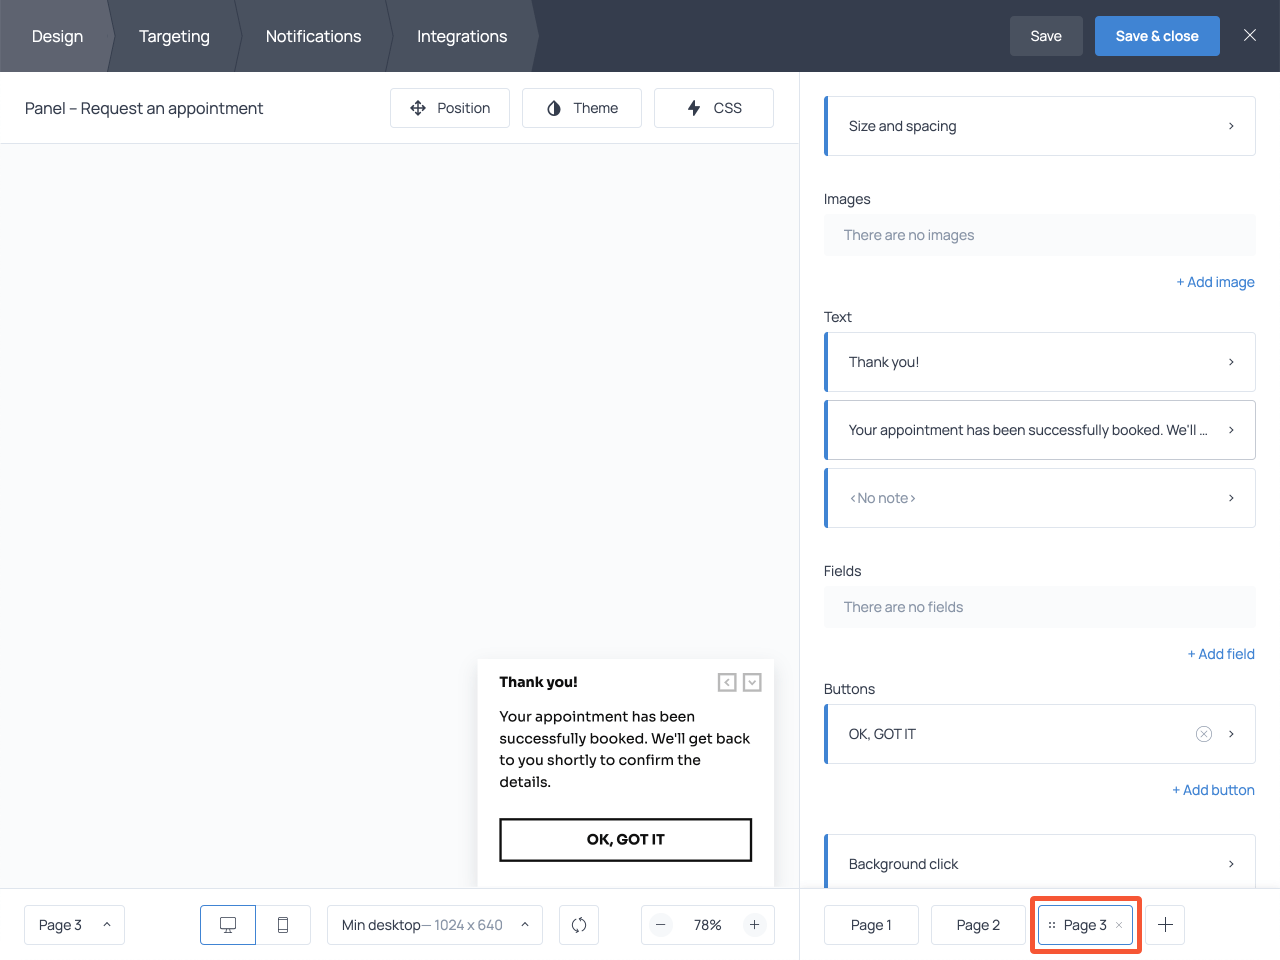 How to create a brief submission success message in Getsitecontrol